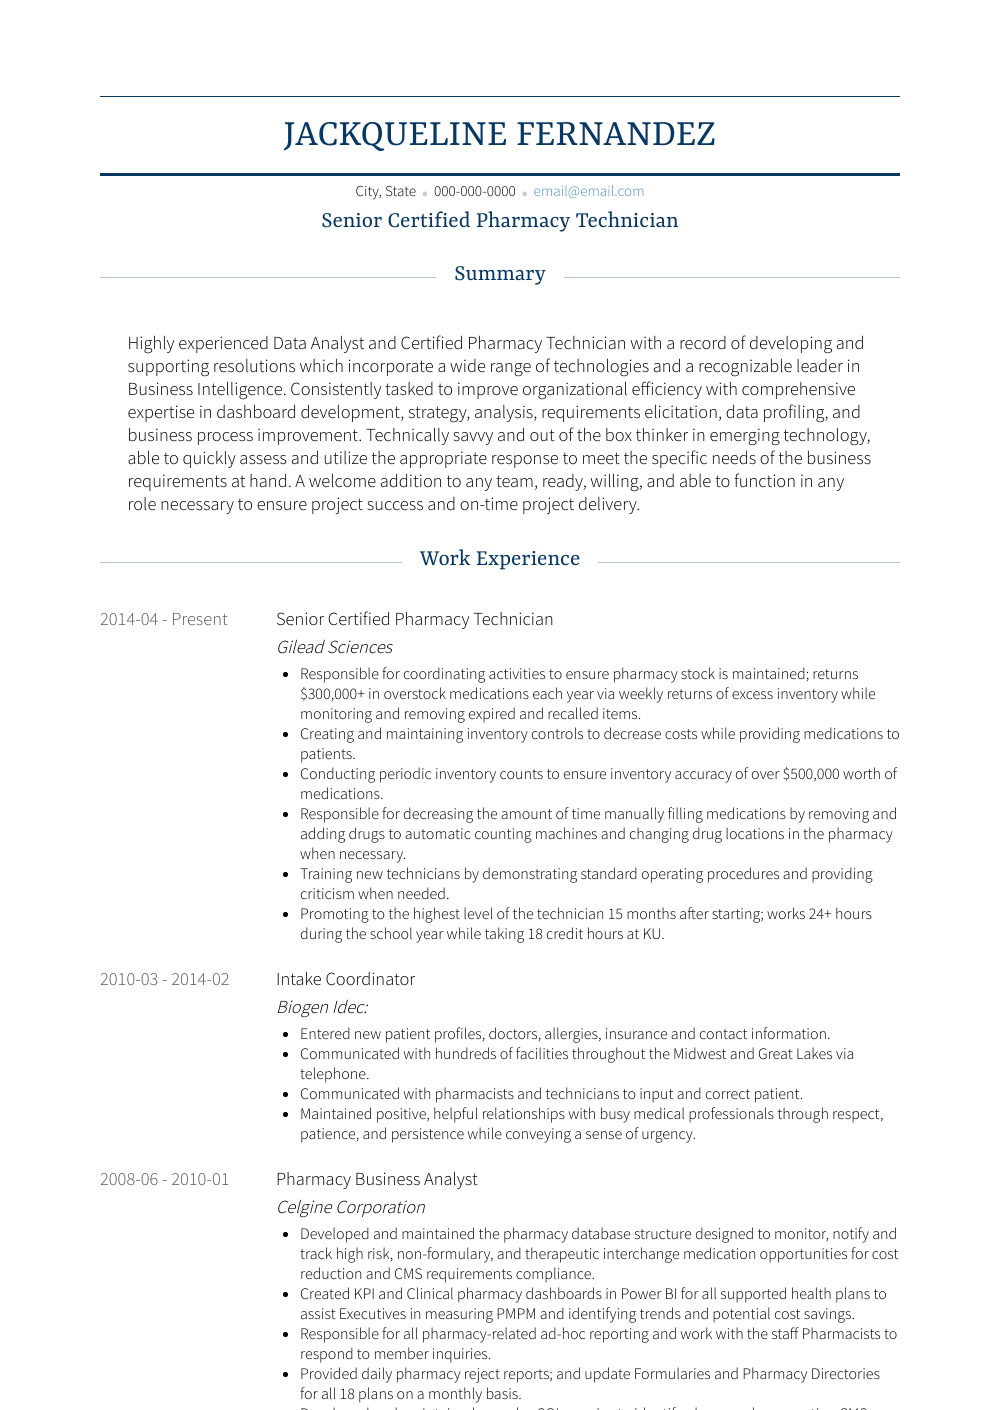 Senior Certified Pharmacy Technician Resume Sample and Template